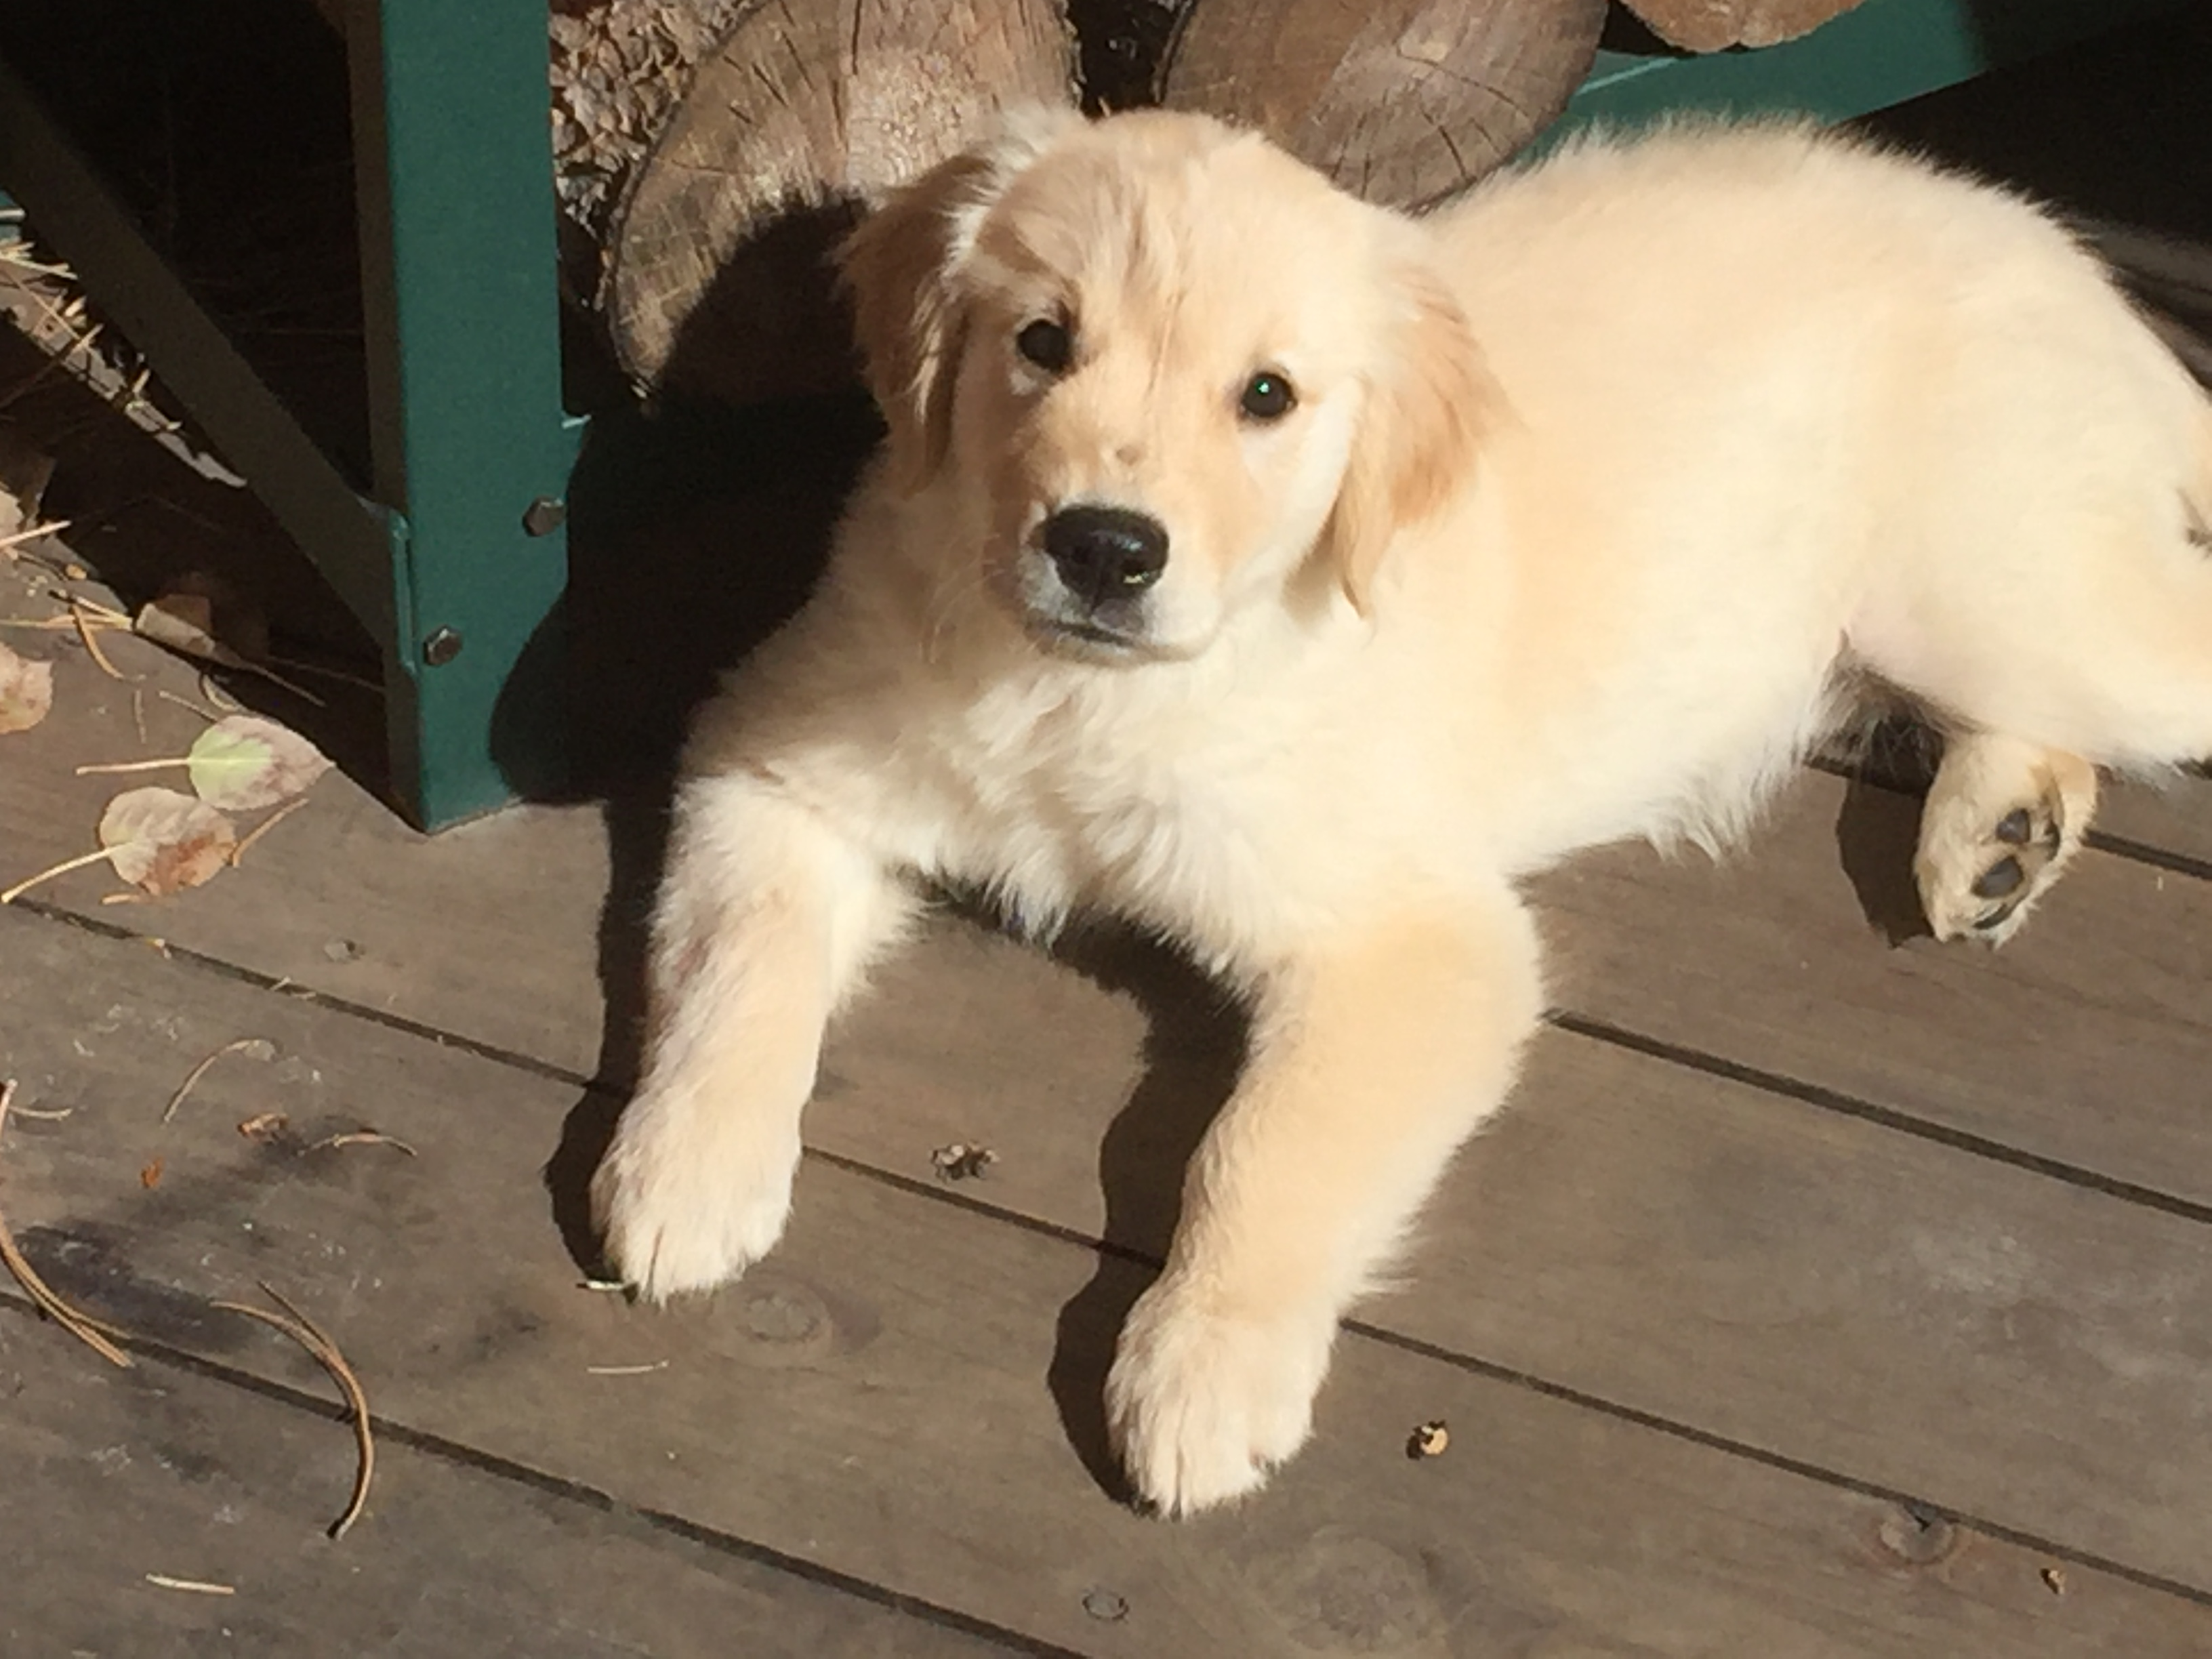 Pearl. The Best Golden Retriever in the World!